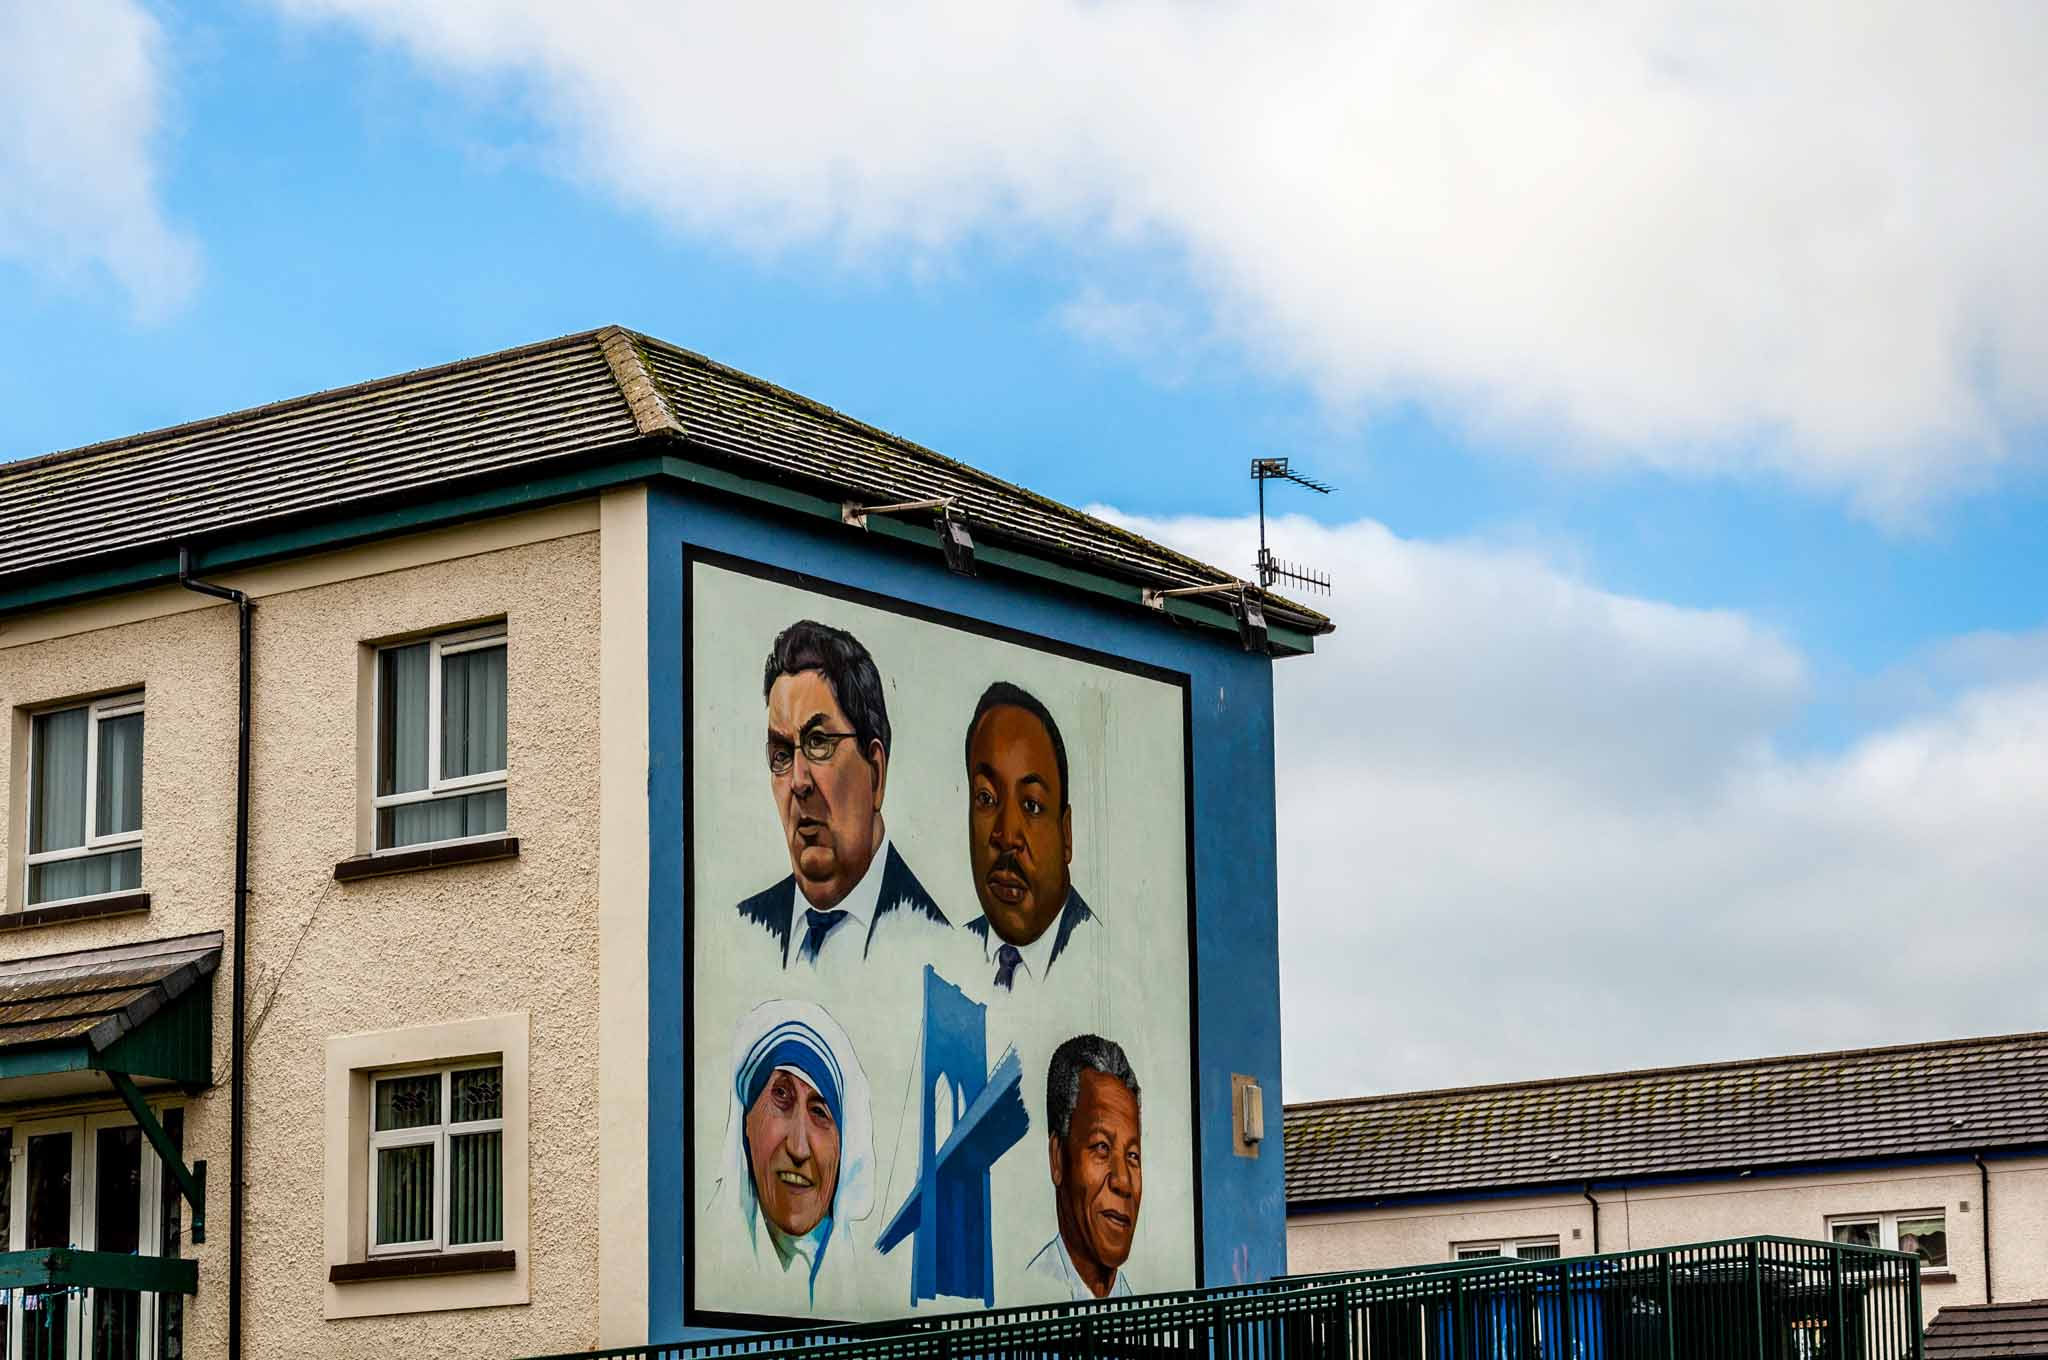 John Hume mural in Derry, Northern Ireland